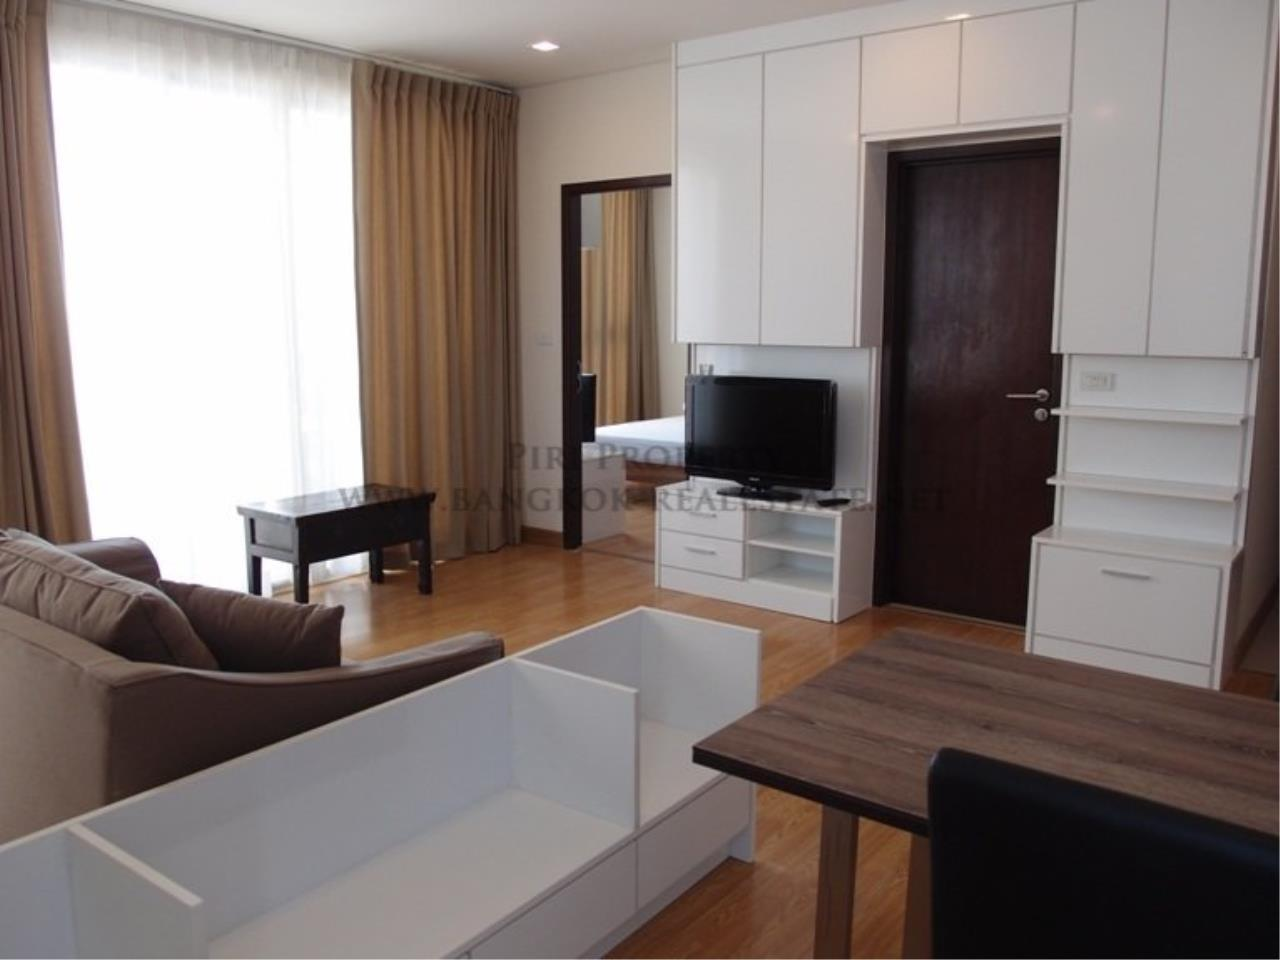 Piri Property Agency's Le Luk Condo - Fully furnished 1 Bedroom 3